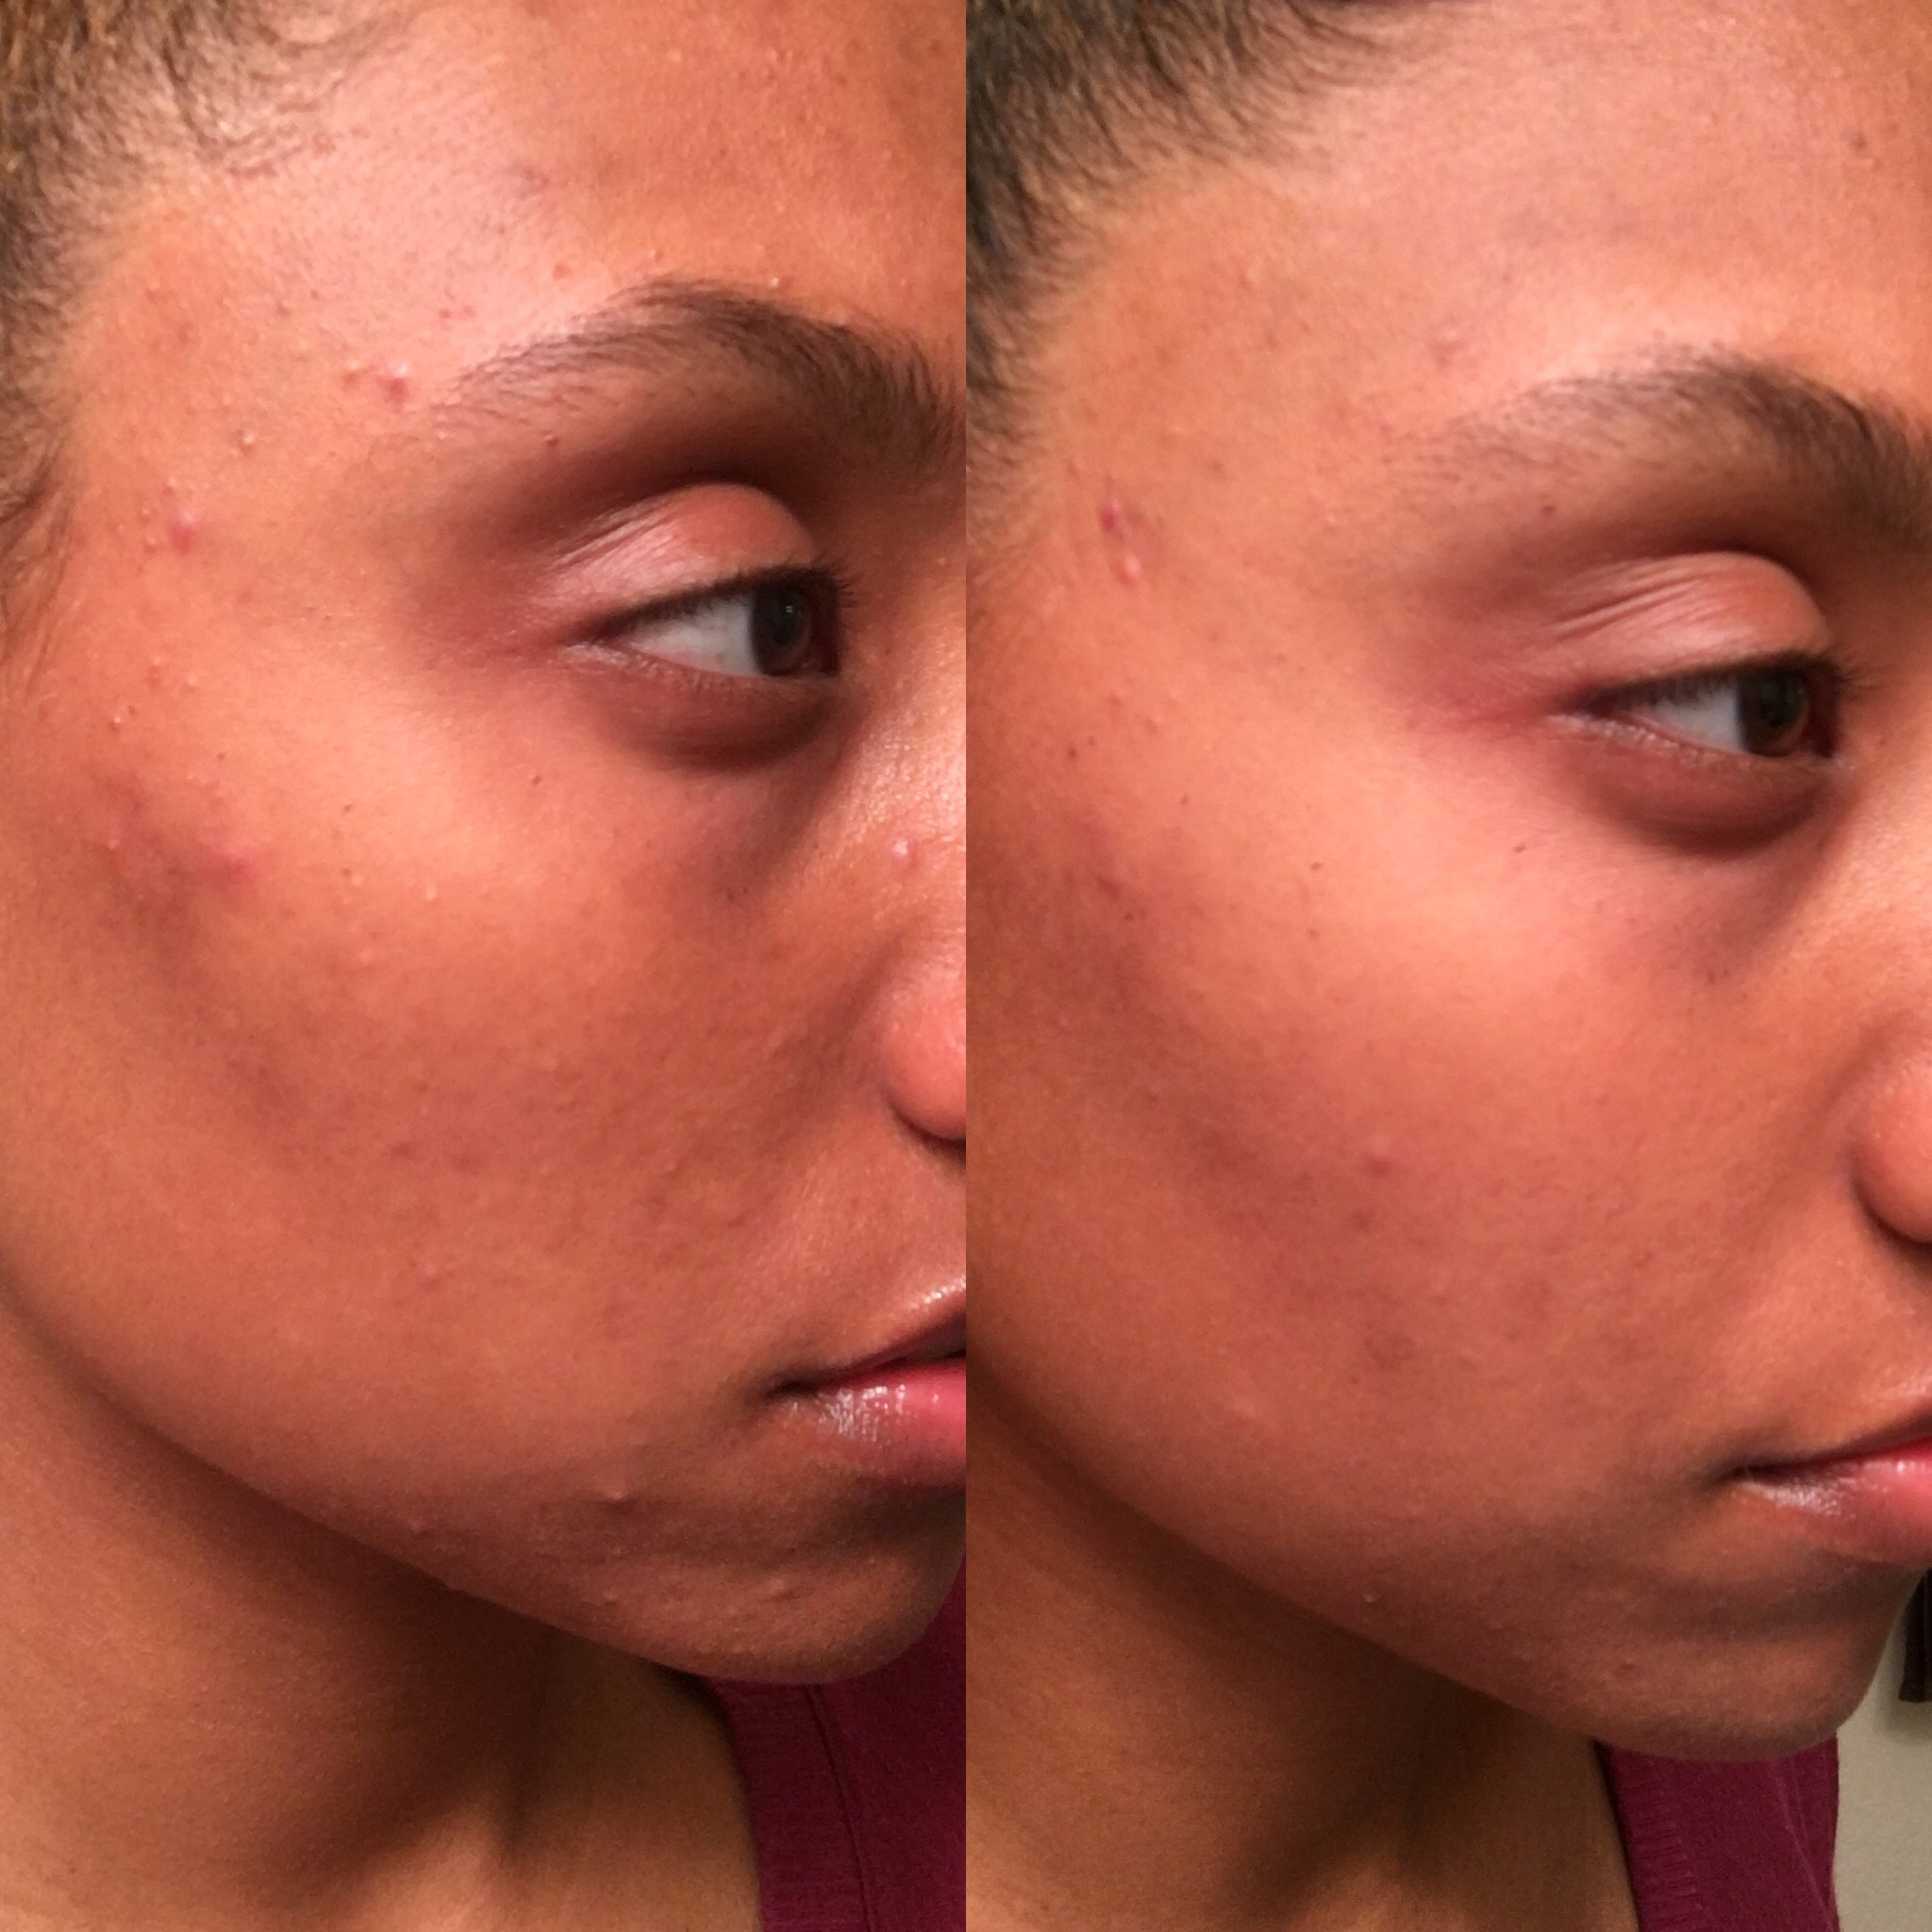 before and after using Kiehl's Blue Herbal Treatment Acne Cleanser